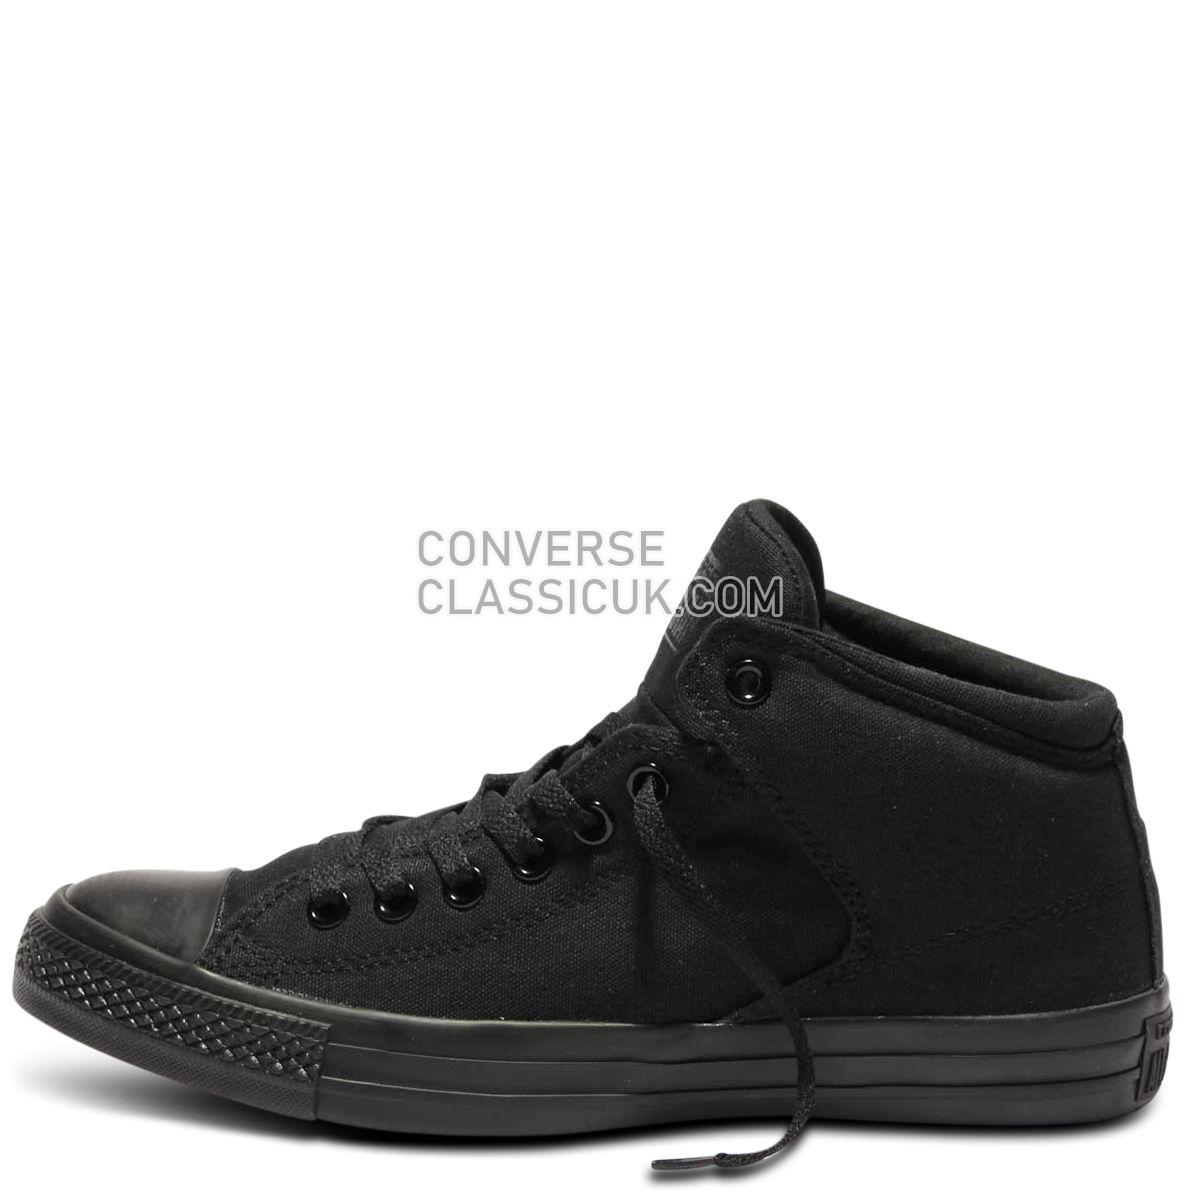 Converse Chuck Taylor All Star High Street Mid Black Mono | Free Shipping  | Buy authentic sneakers and gear direct from Converse Mens Womens Unisex 149432 Black/Black/Black Shoes